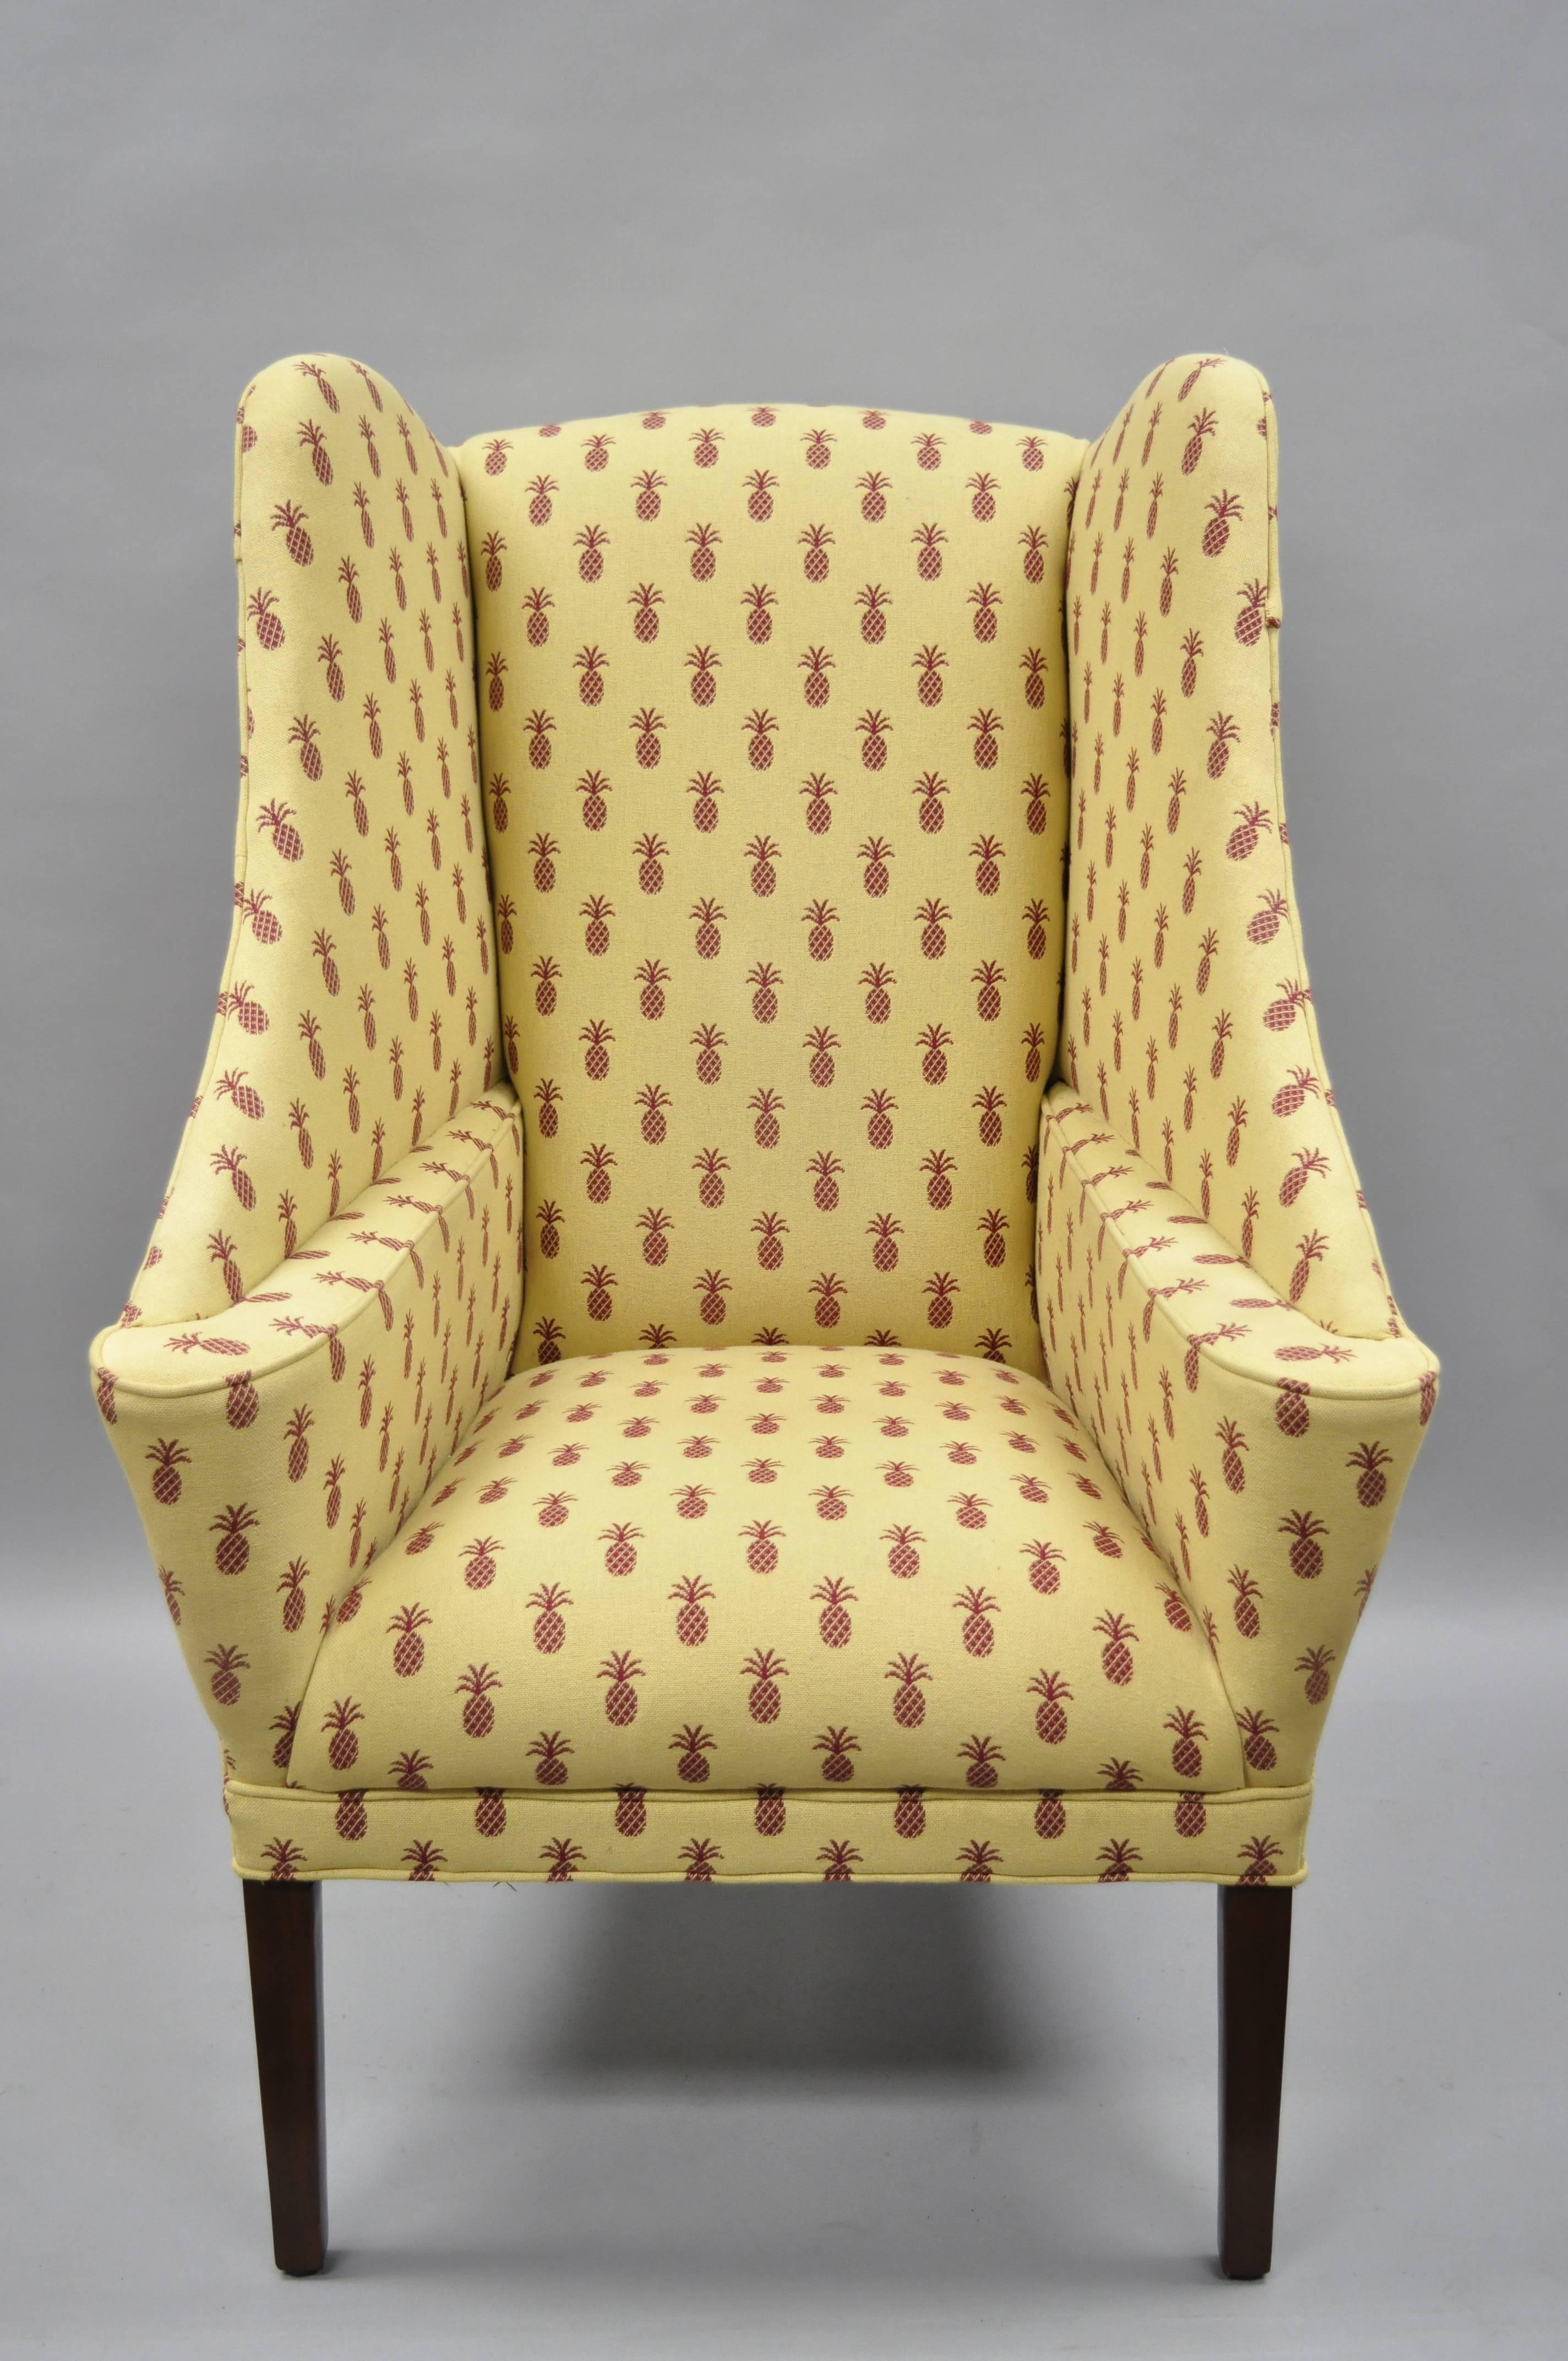 Pair Of Oversized Custom Wingback Chairs With Pineapple Printed Yellow  Fabric. Item Features Yellow Upholstery